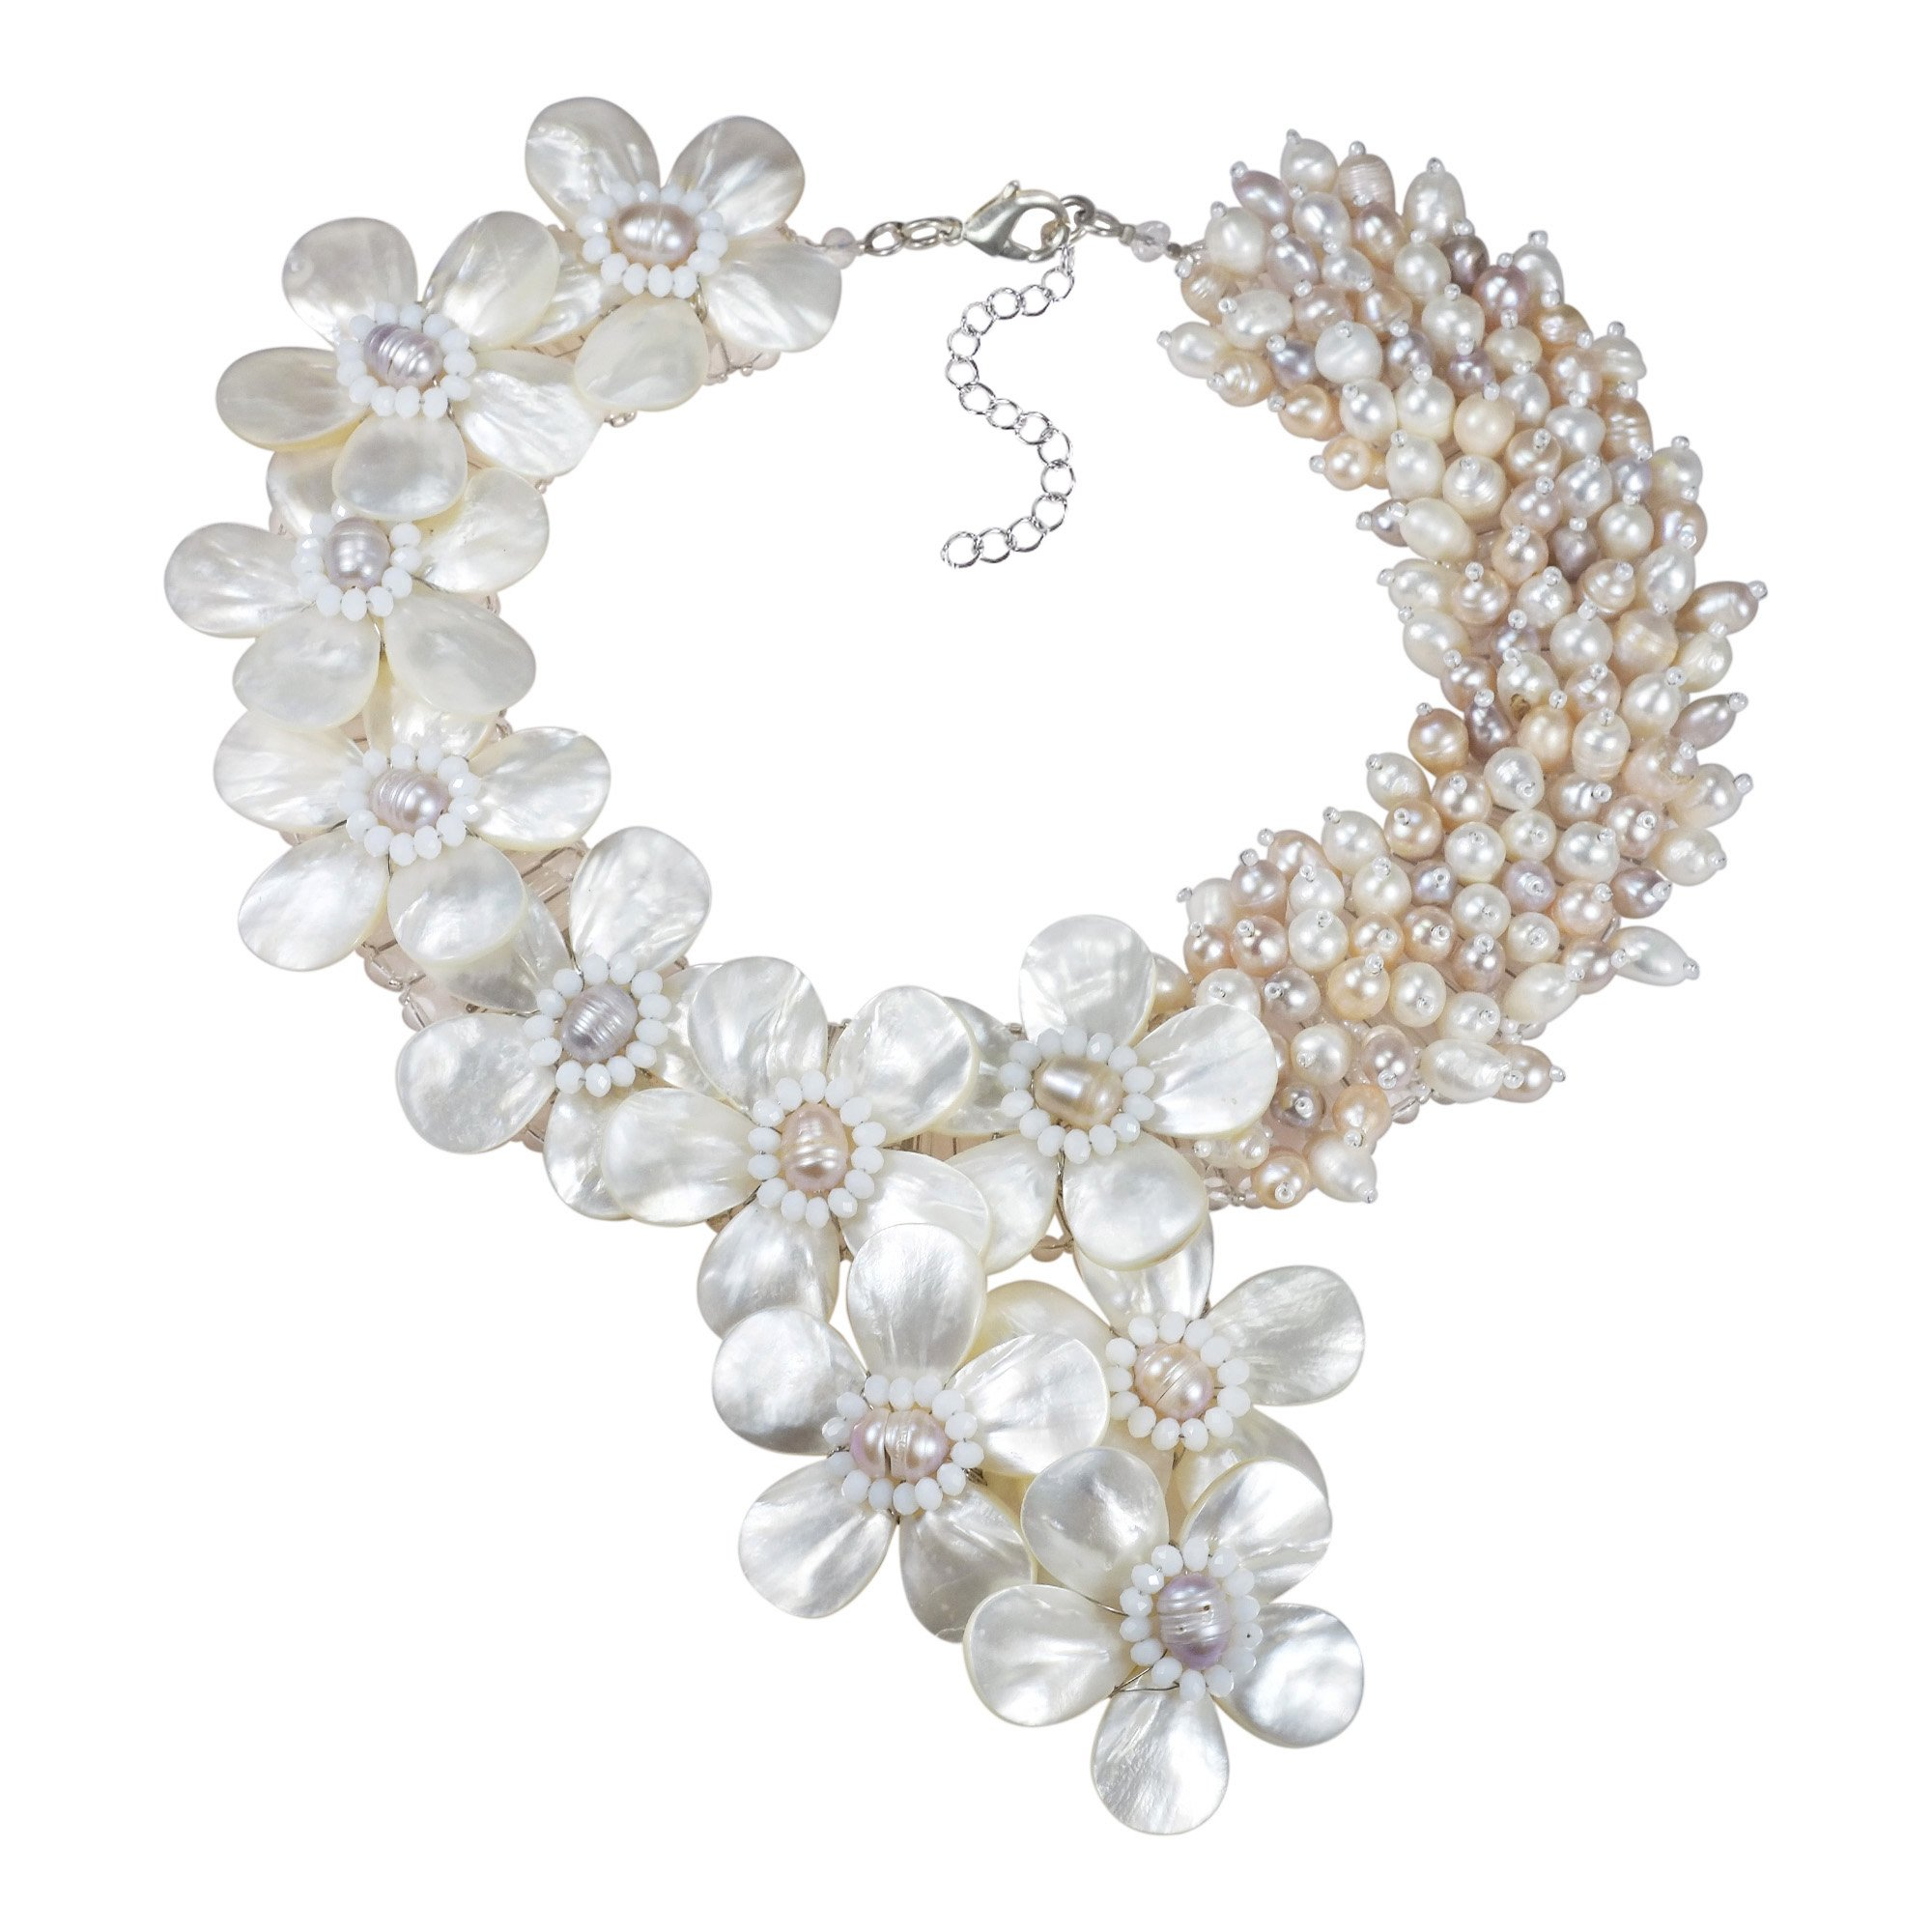 Elegant Blush Romance Mother of Pearl & Cultured Freshwater Pearl Floral Collar Necklace